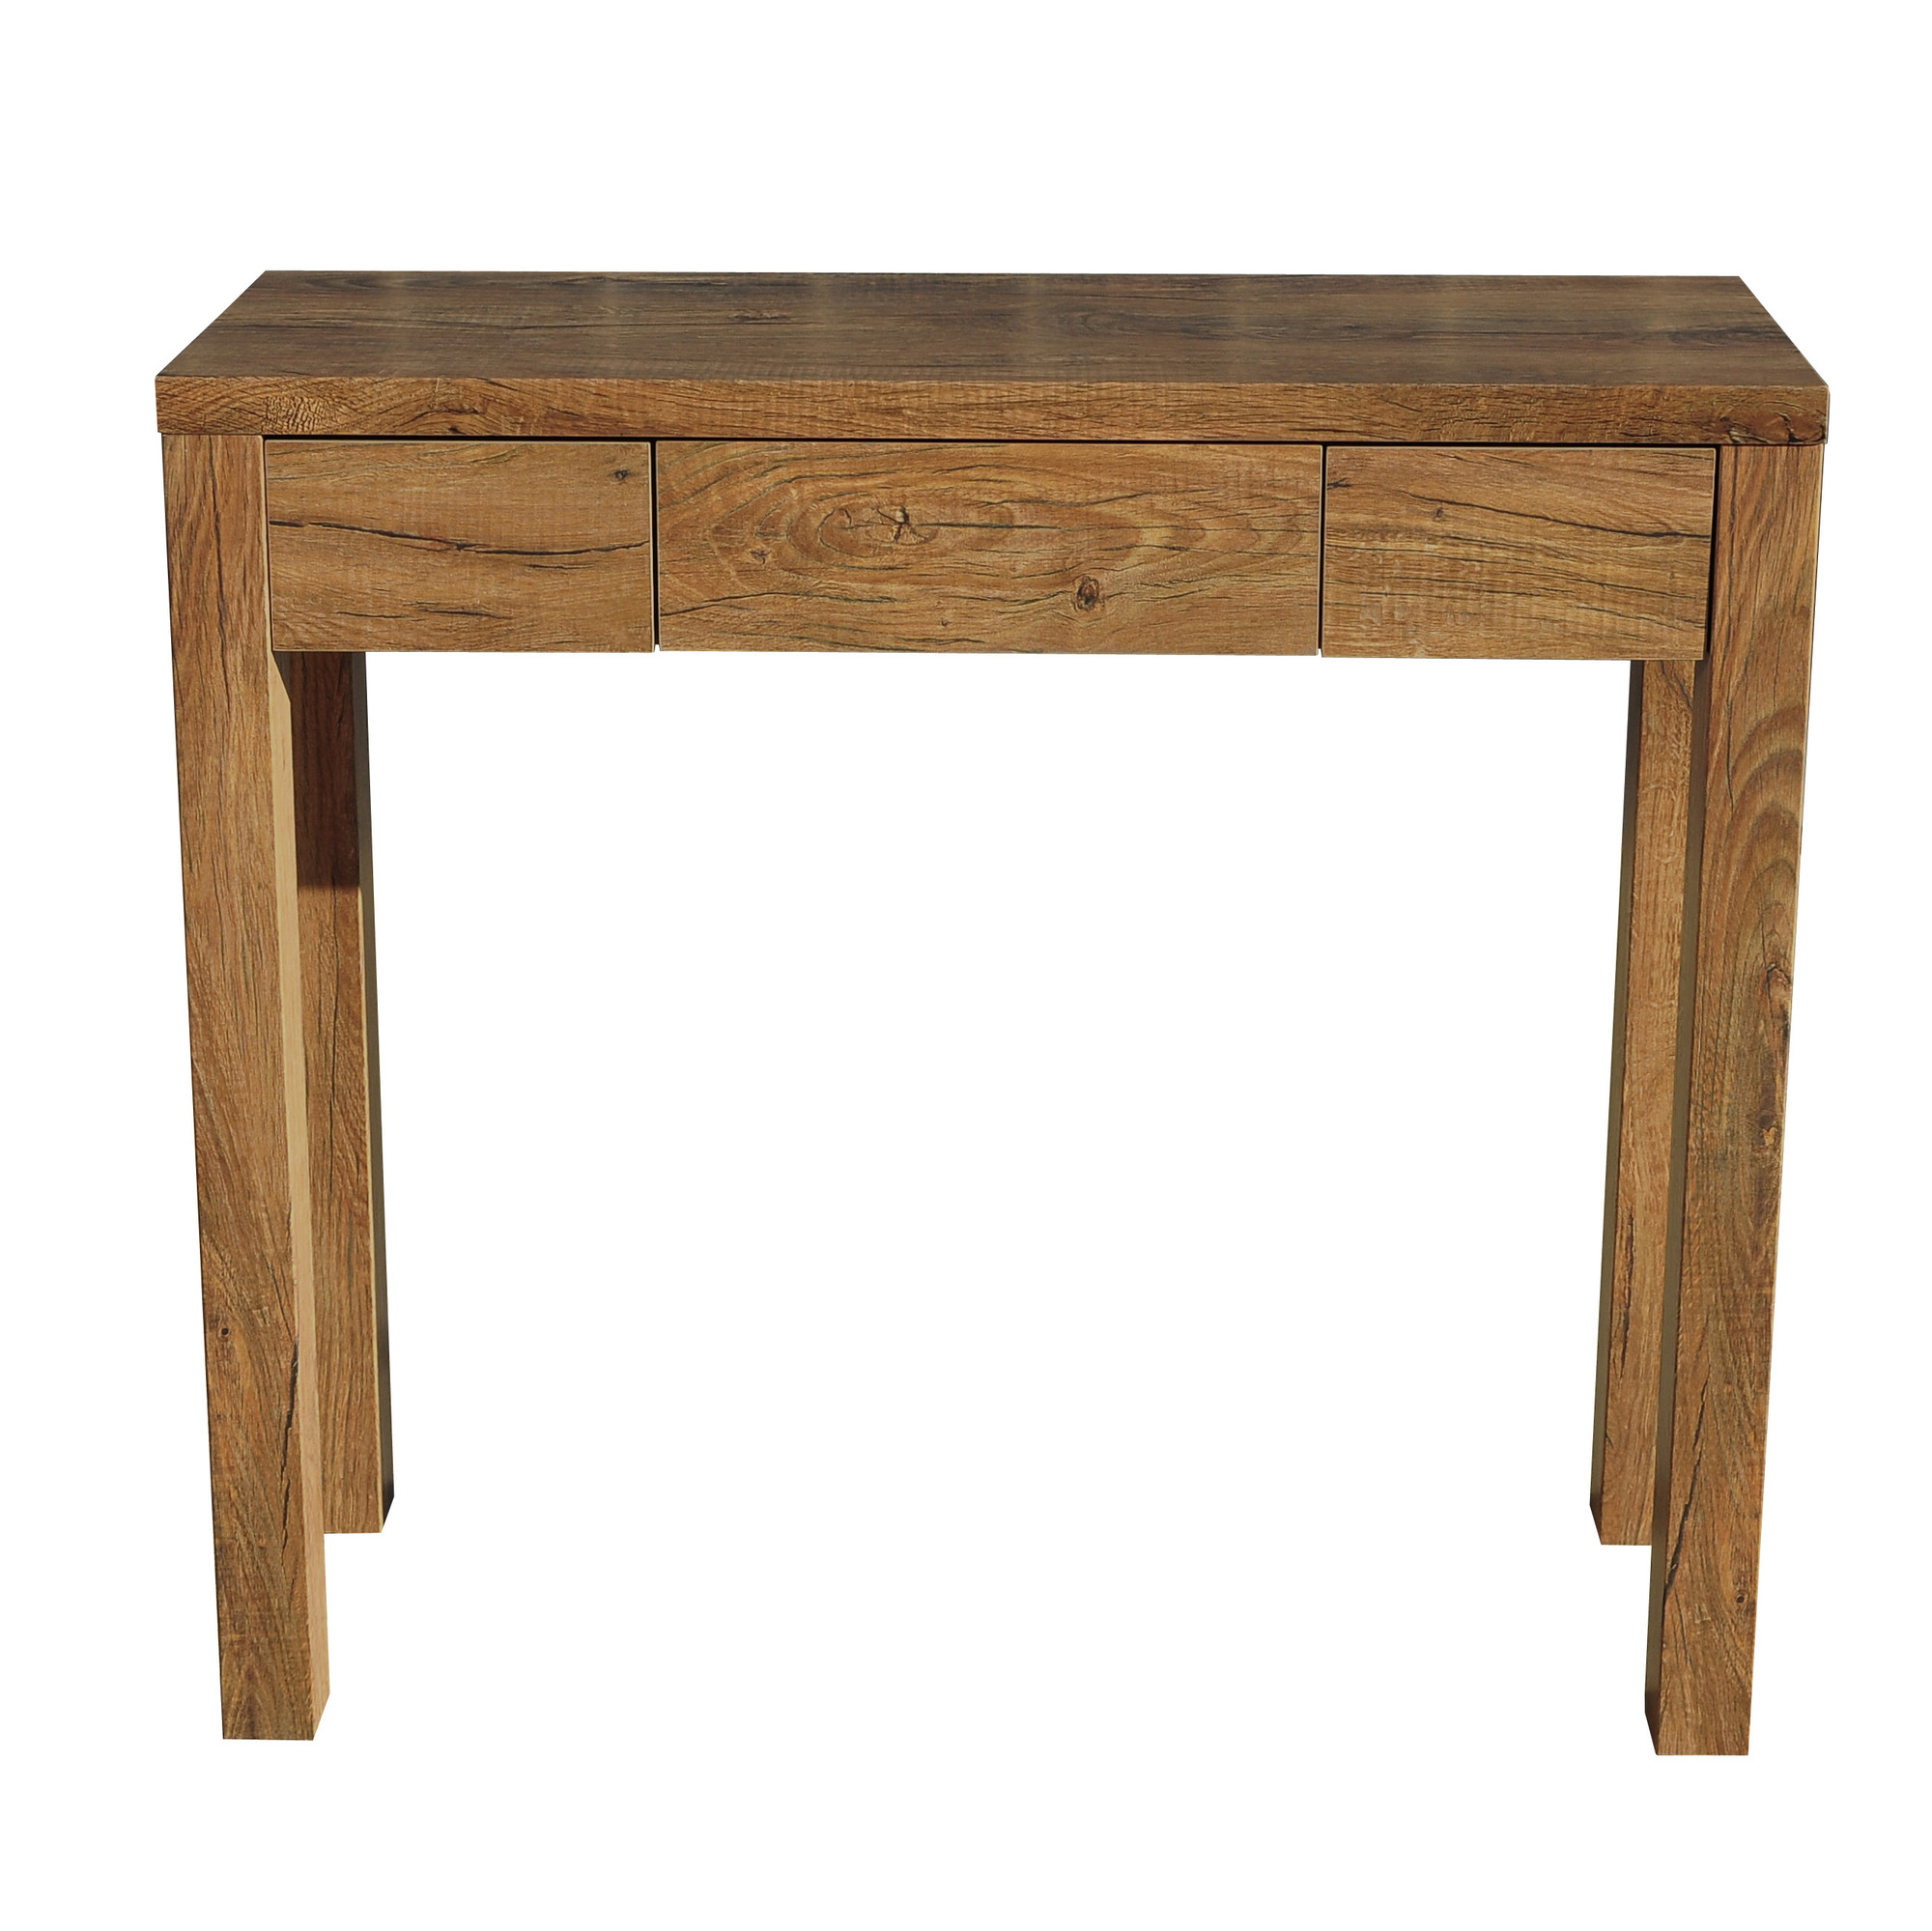 SKU #OTES1246 Antique Oak Look Karen Hallway Table Is Also Sometimes Listed  Under The Following Manufacturer Numbers: 27060101